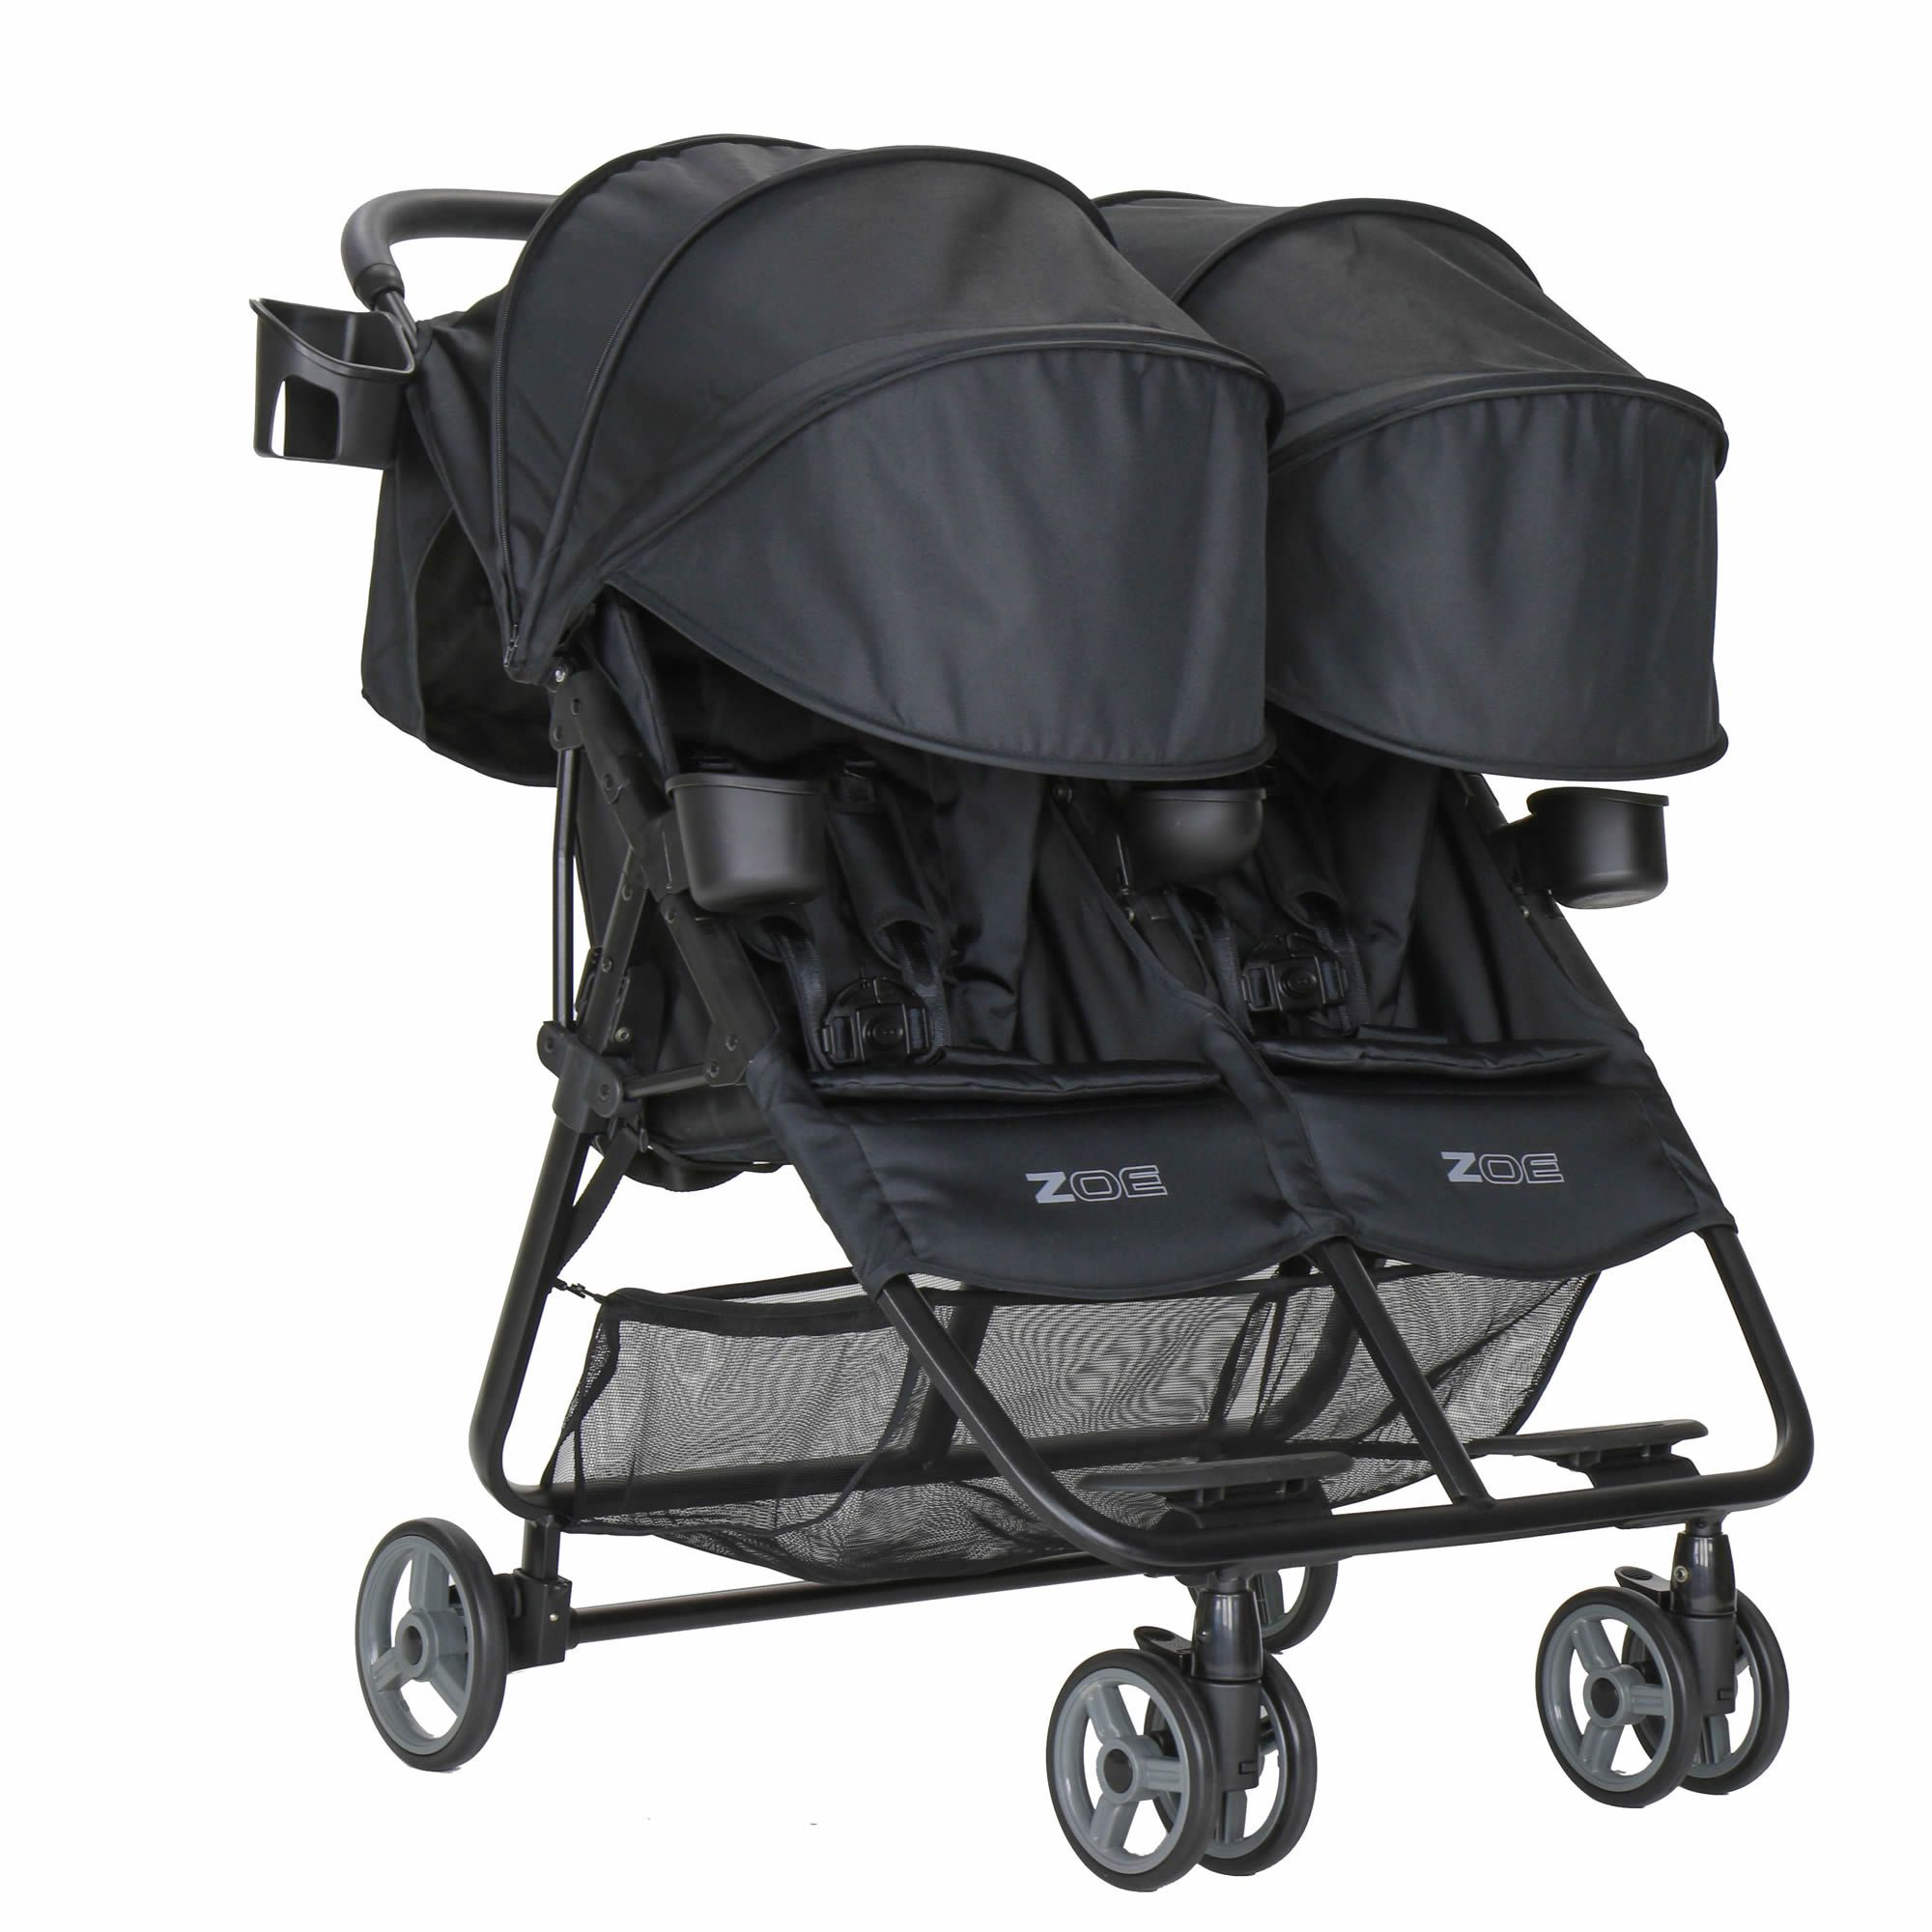 ZOE XL2 The 16lb Ultra Lightweight Double Stroller